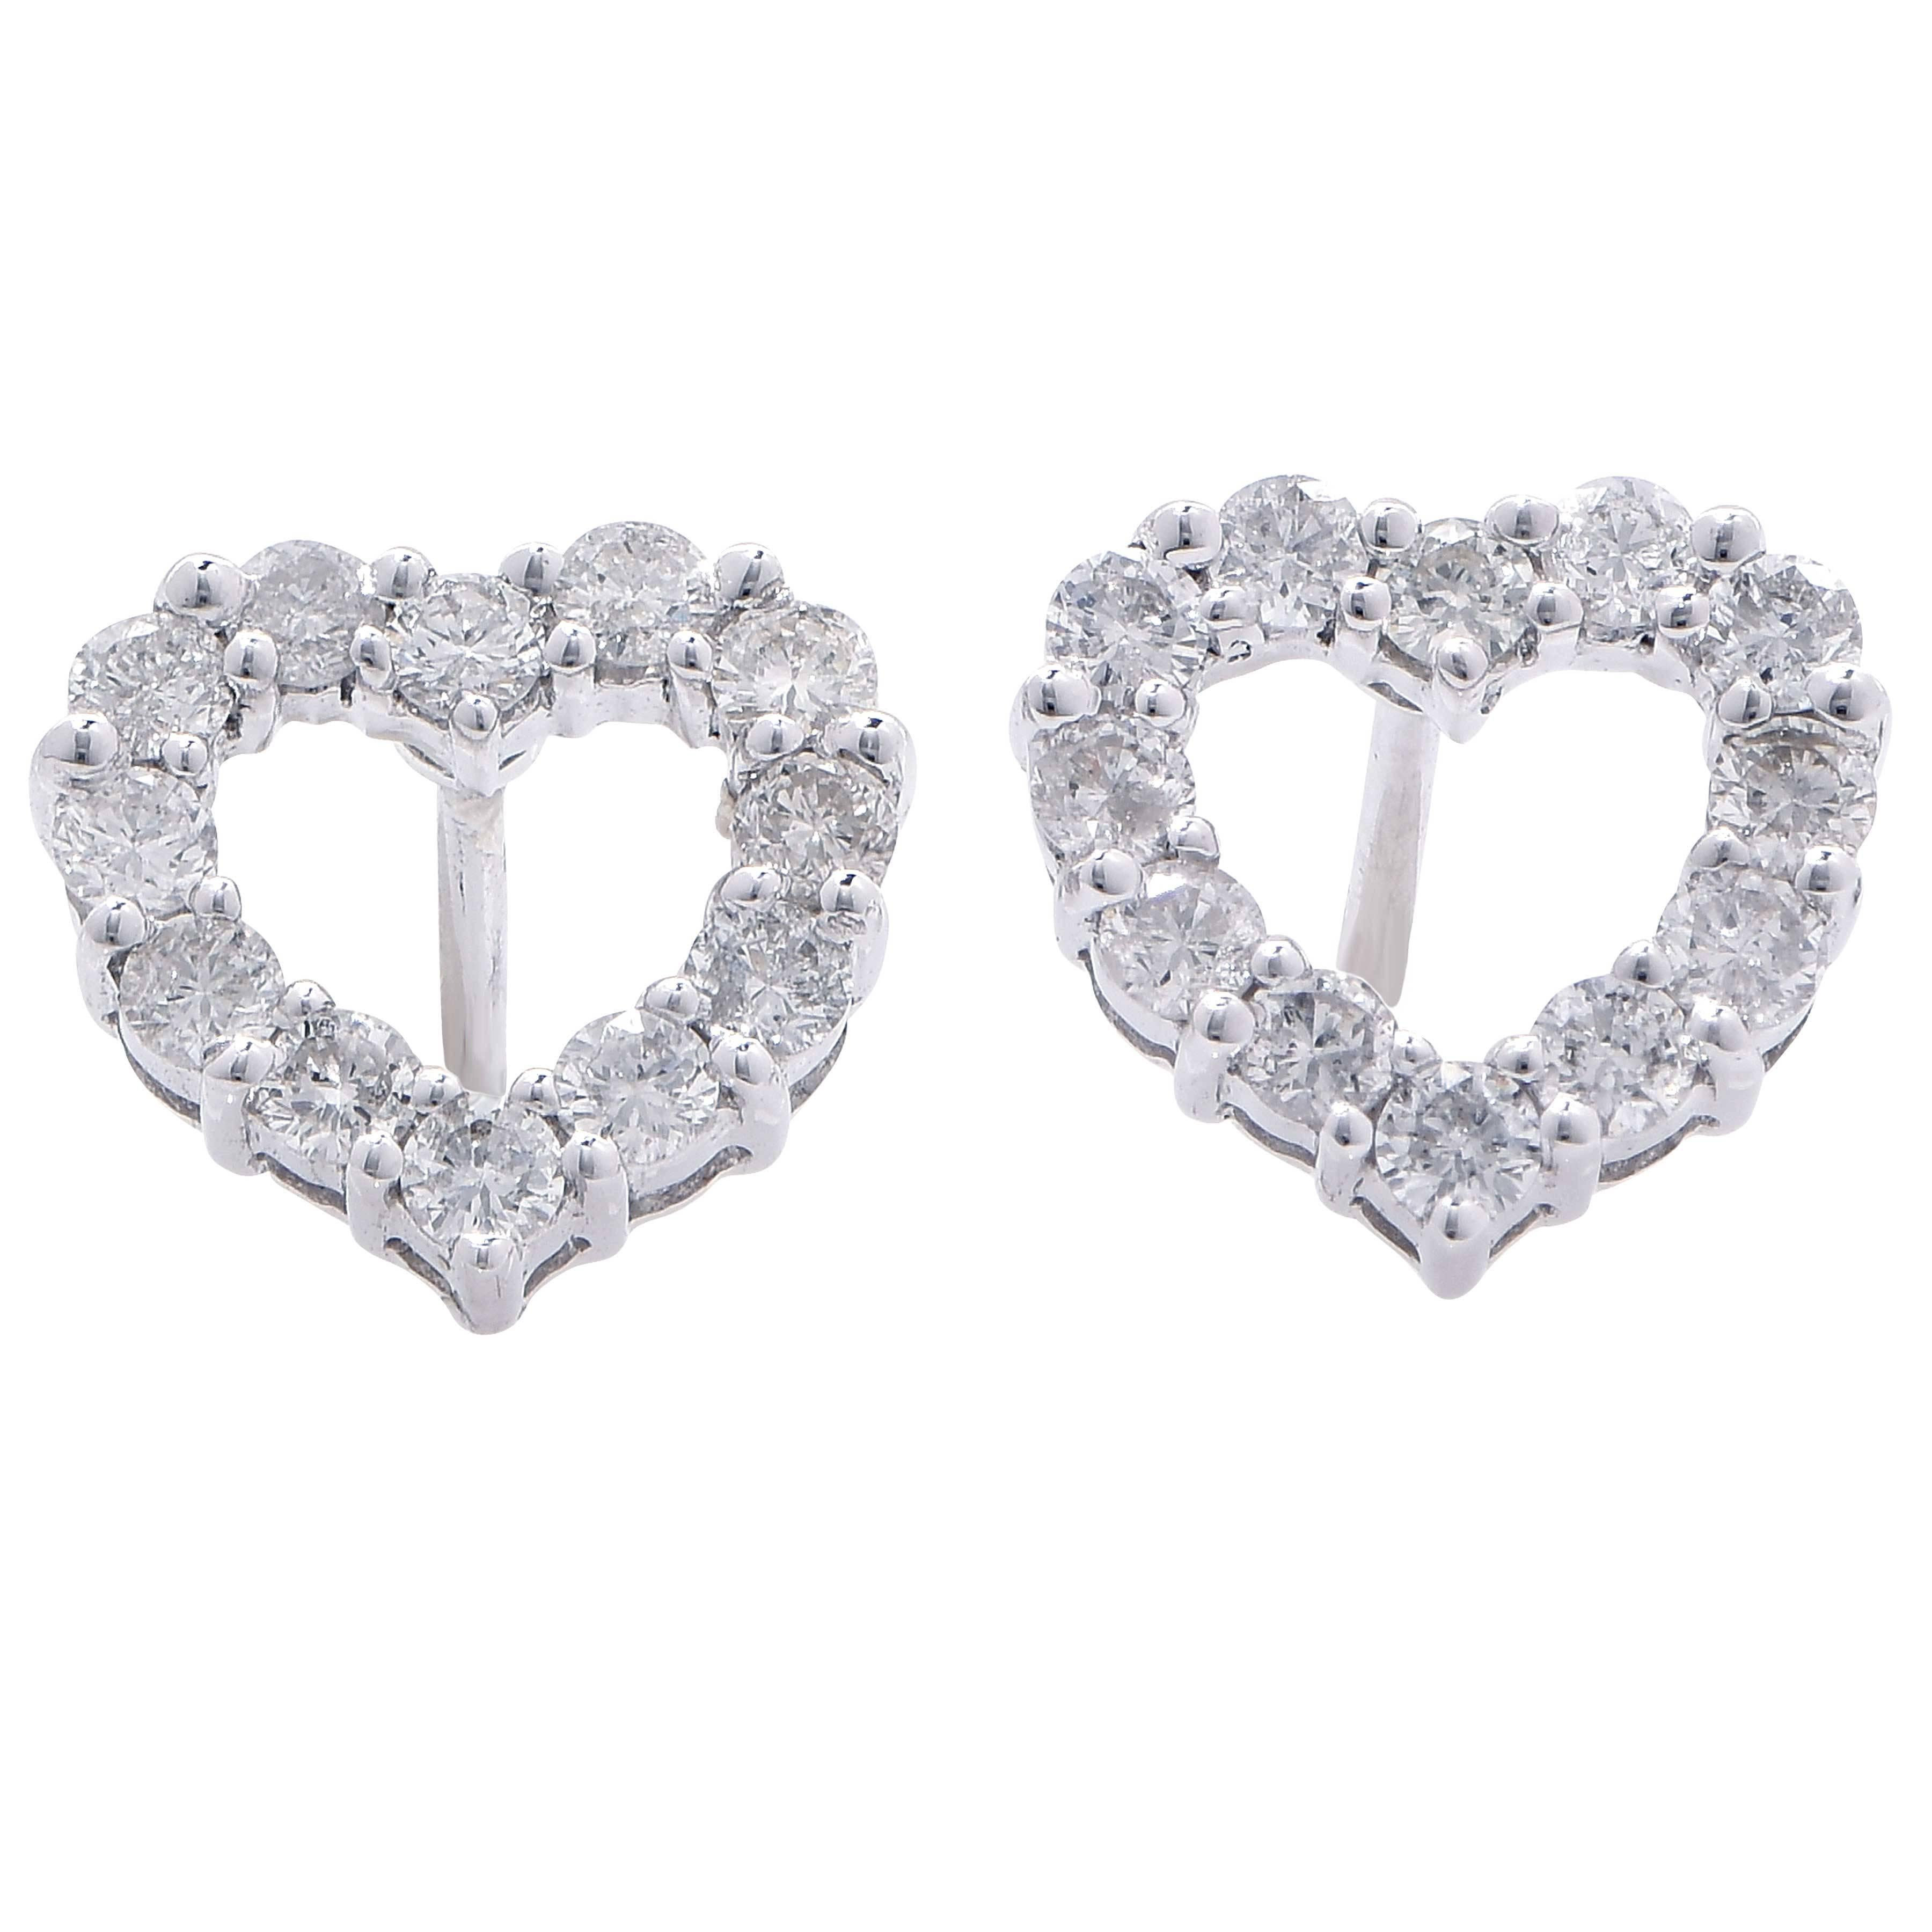 silk thread home product sale earrings shoppersloot accessories heart reviews img shape